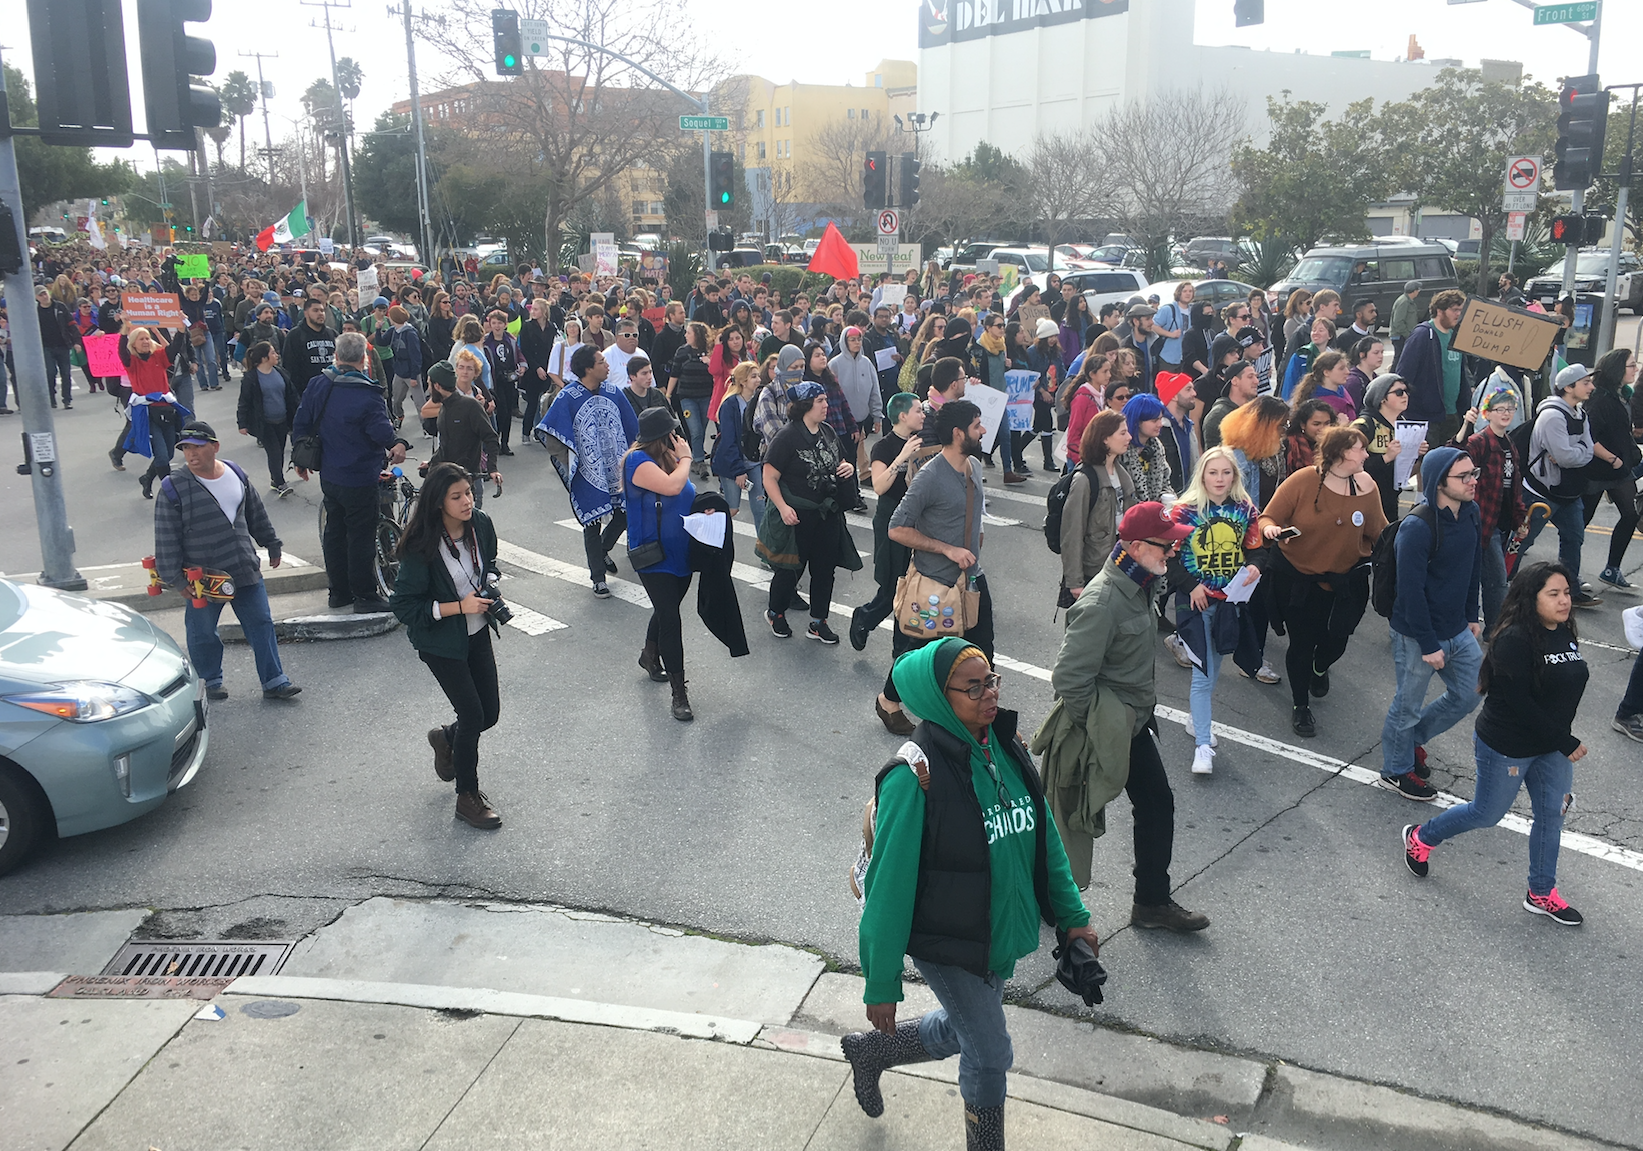 Gallery: Hundreds March to Downtown Santa Cruz on Inauguration day